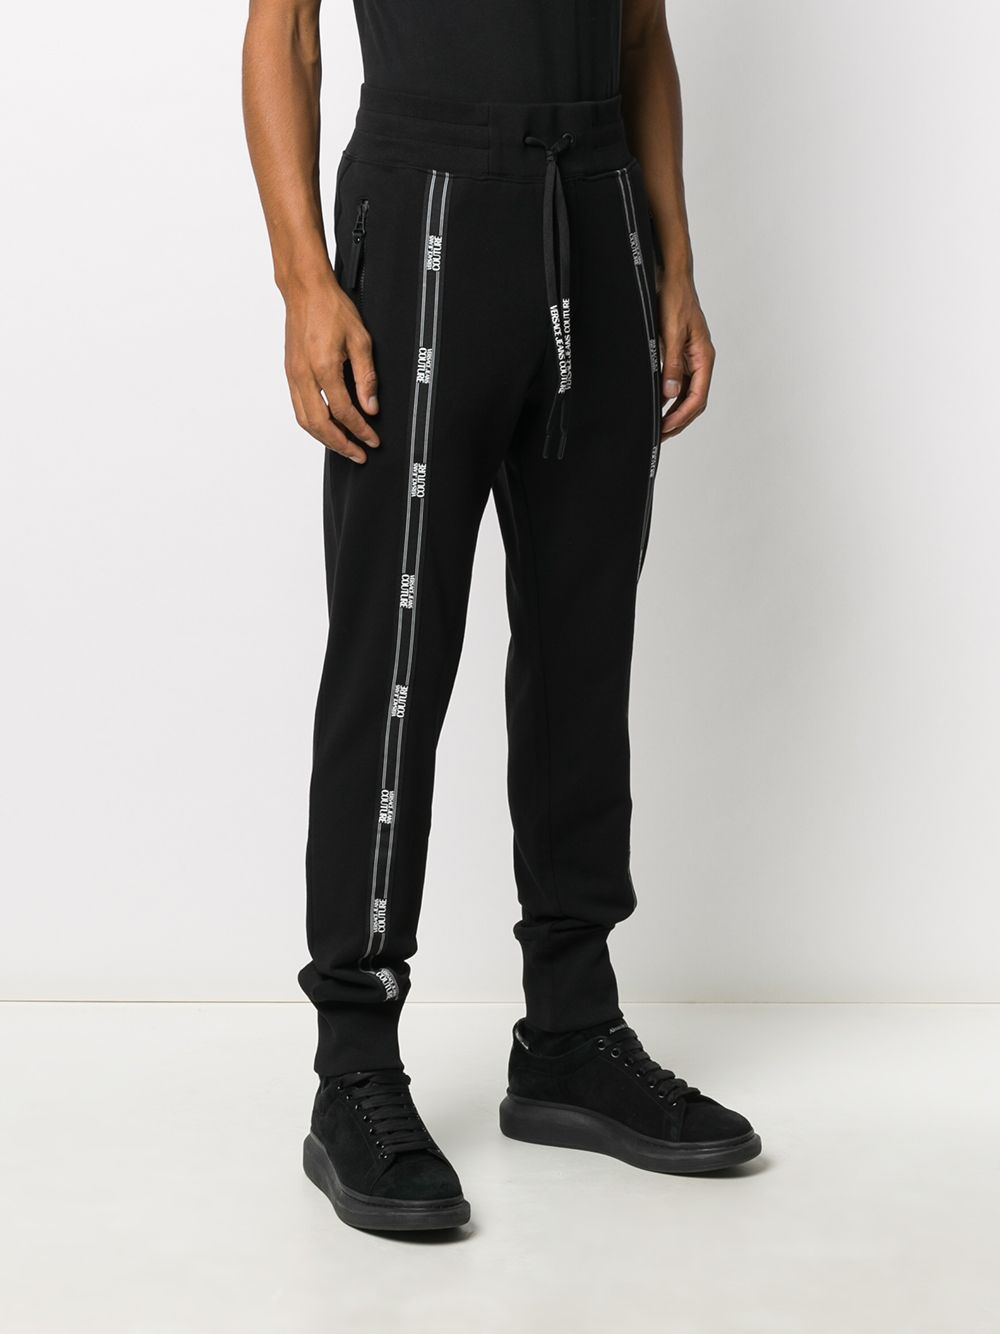 VERSACE JEANS COUTURE |  | A2.GZA1F0.13988899